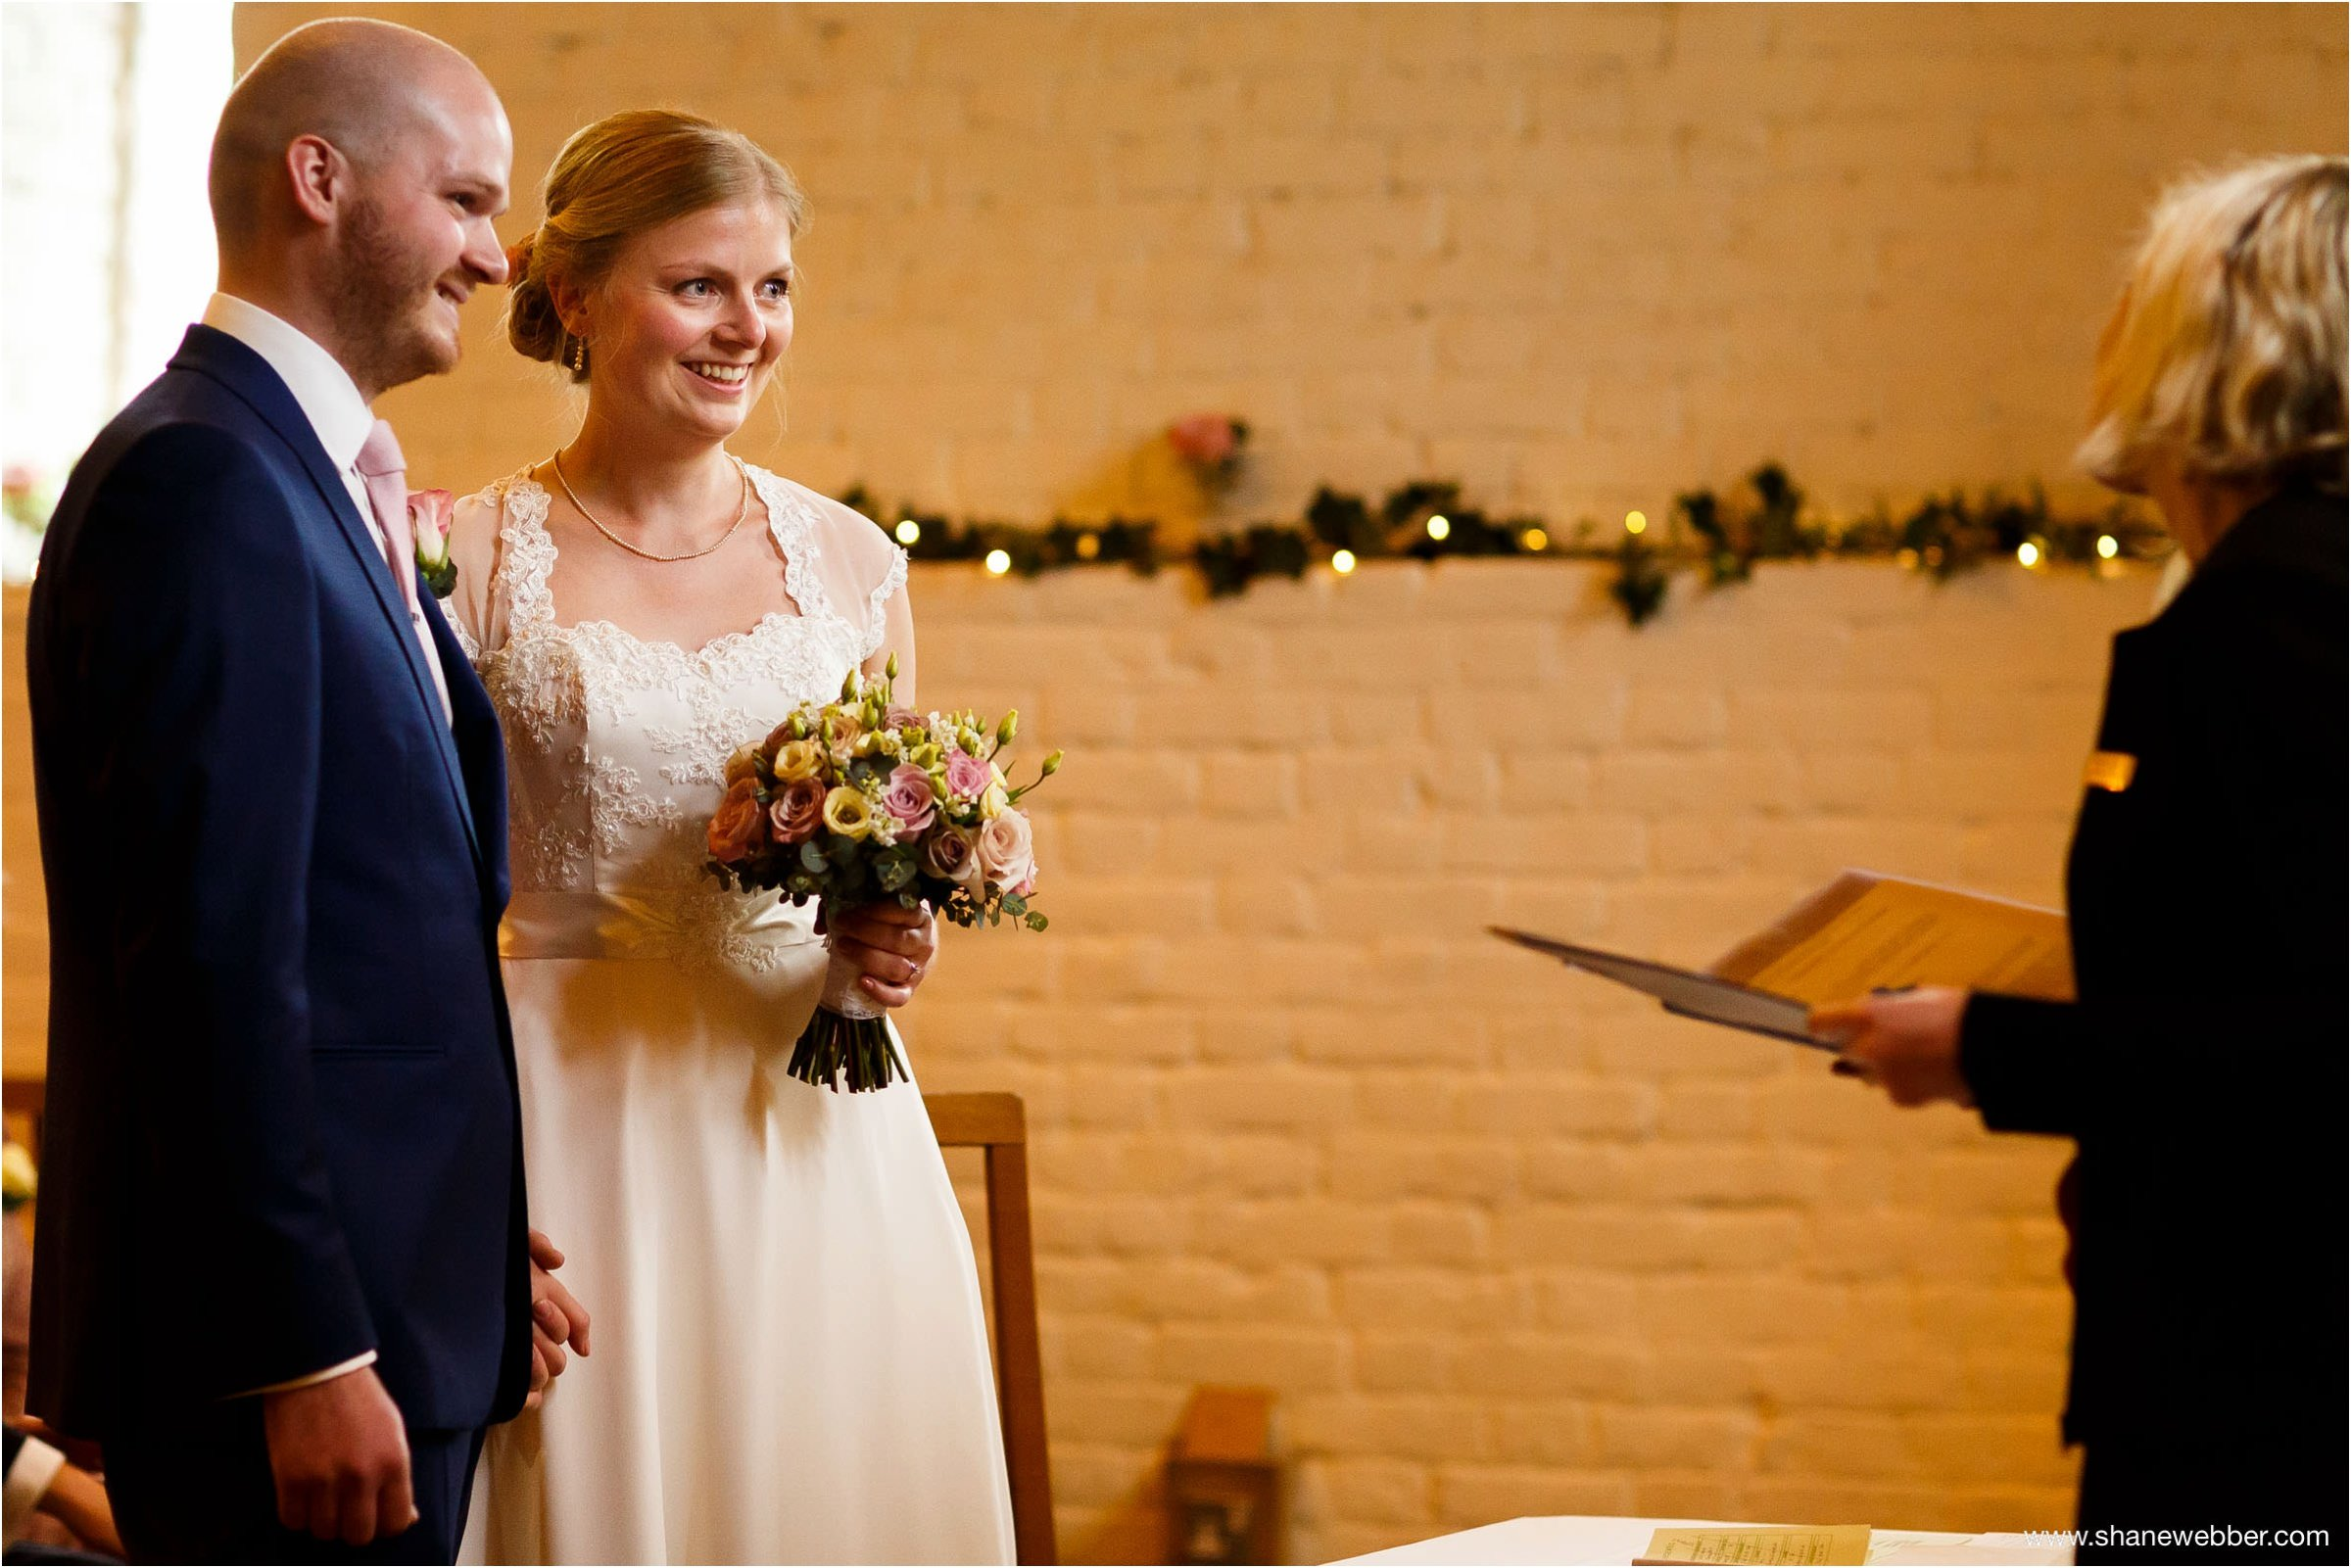 Ufton Court Barn Wedding Ceremony